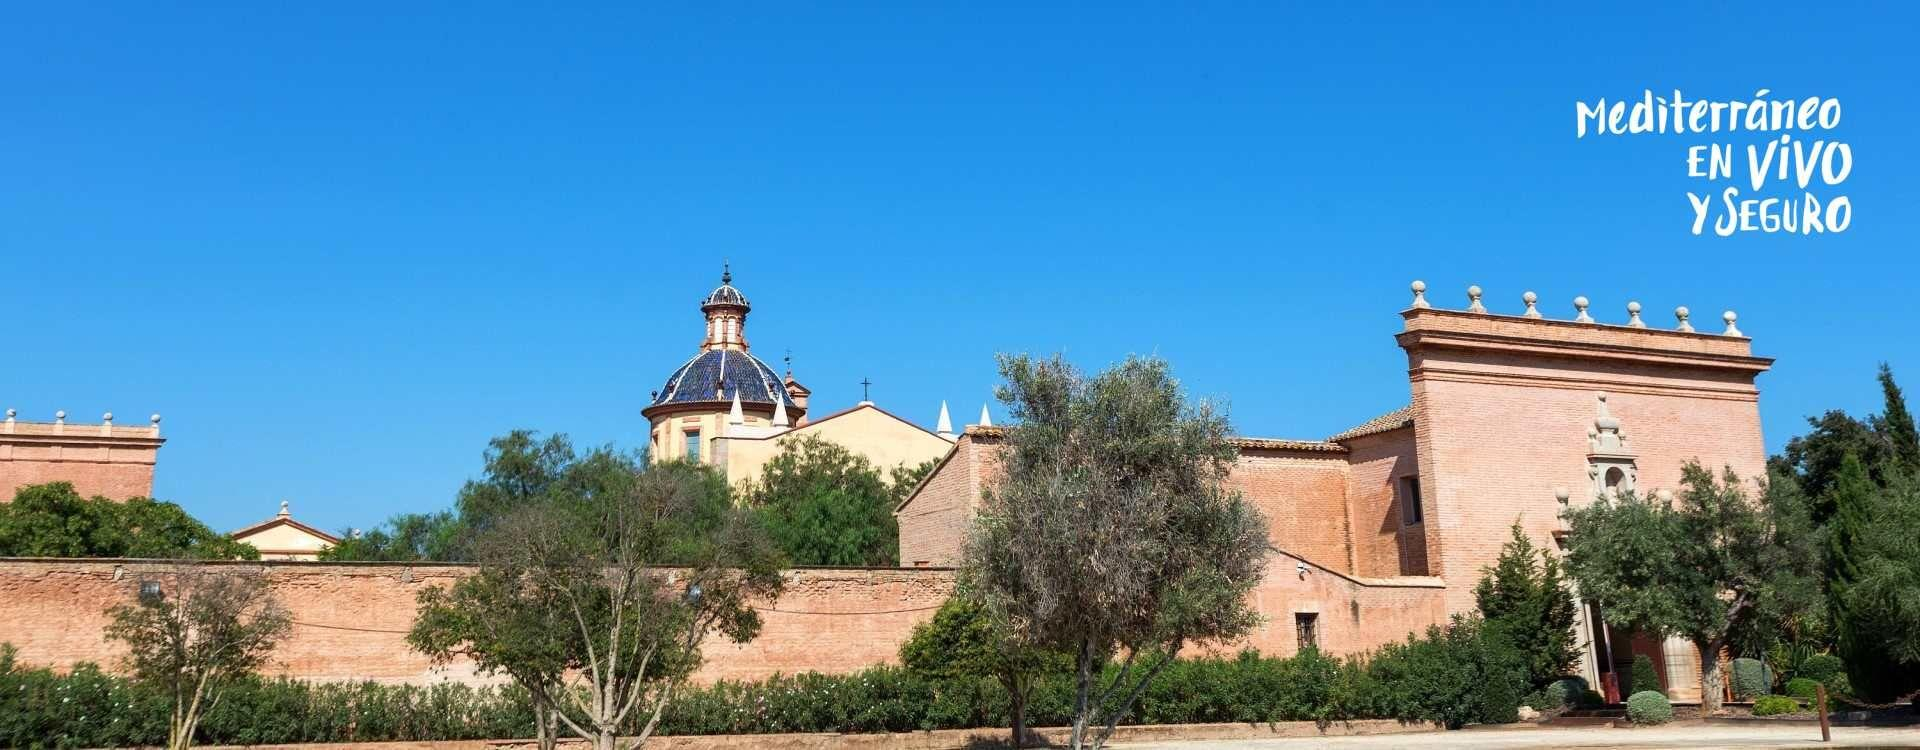 Image of the Carthusian monastery of Ara Christi